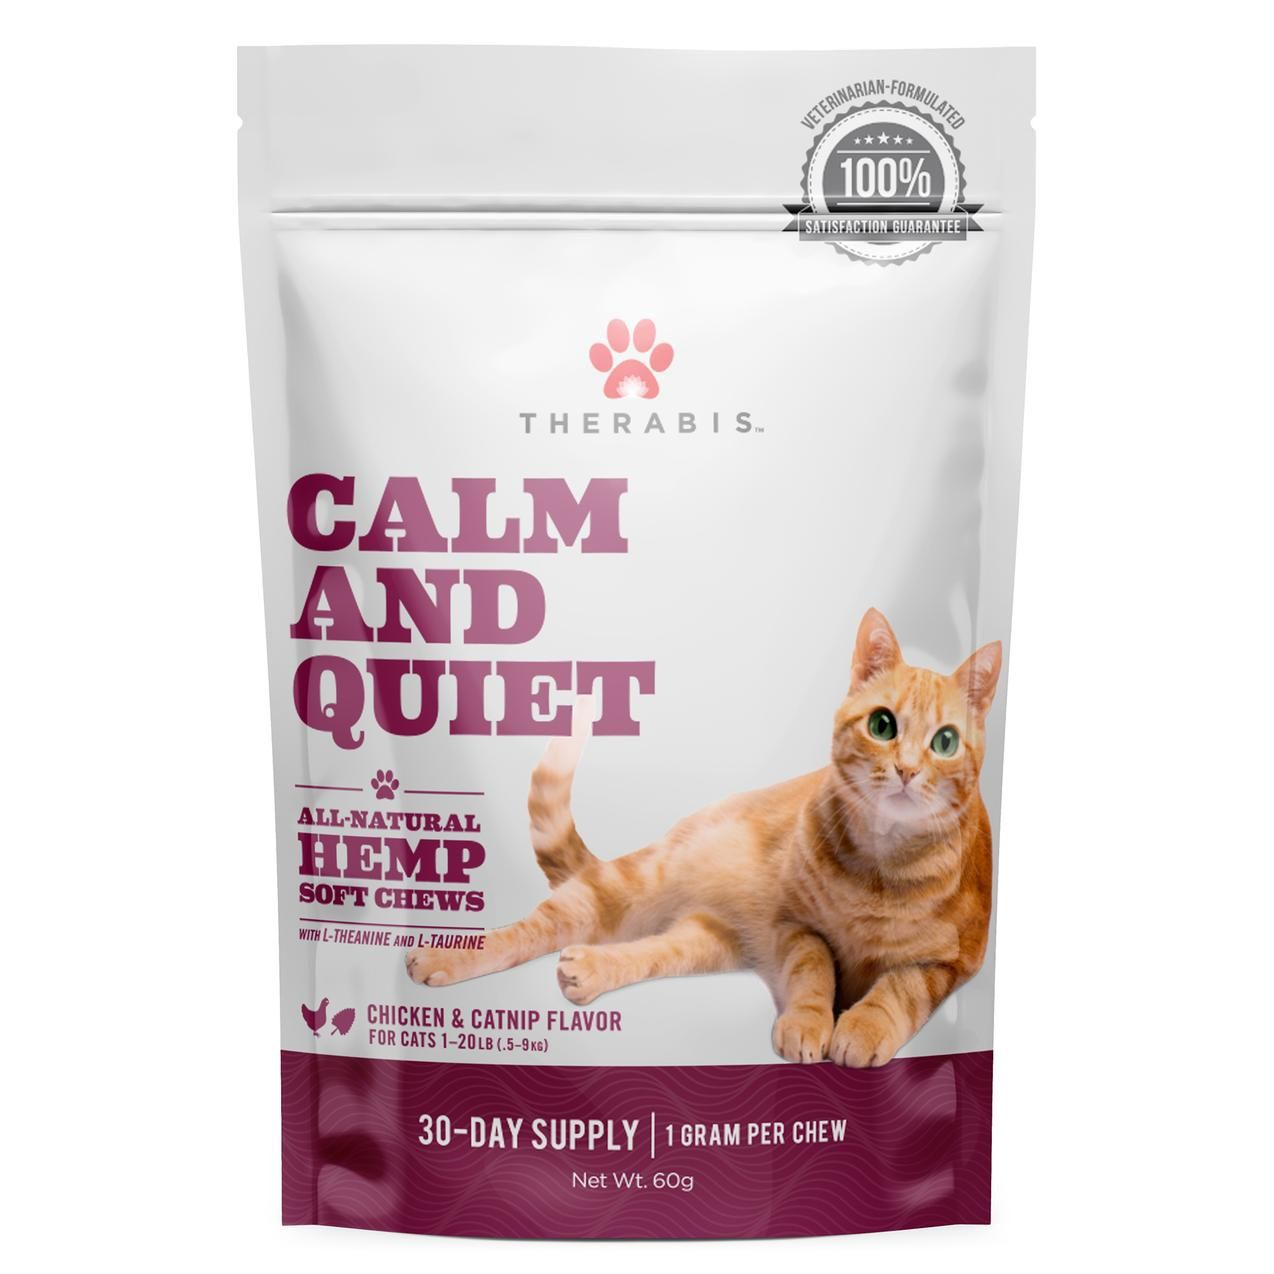 Therabis Calm and Quiet cat treats say they 'help cats maintain a calm demeanor in apprehensive situations' with one milligram of CBD per soft chew. PHOTO: THERABIS